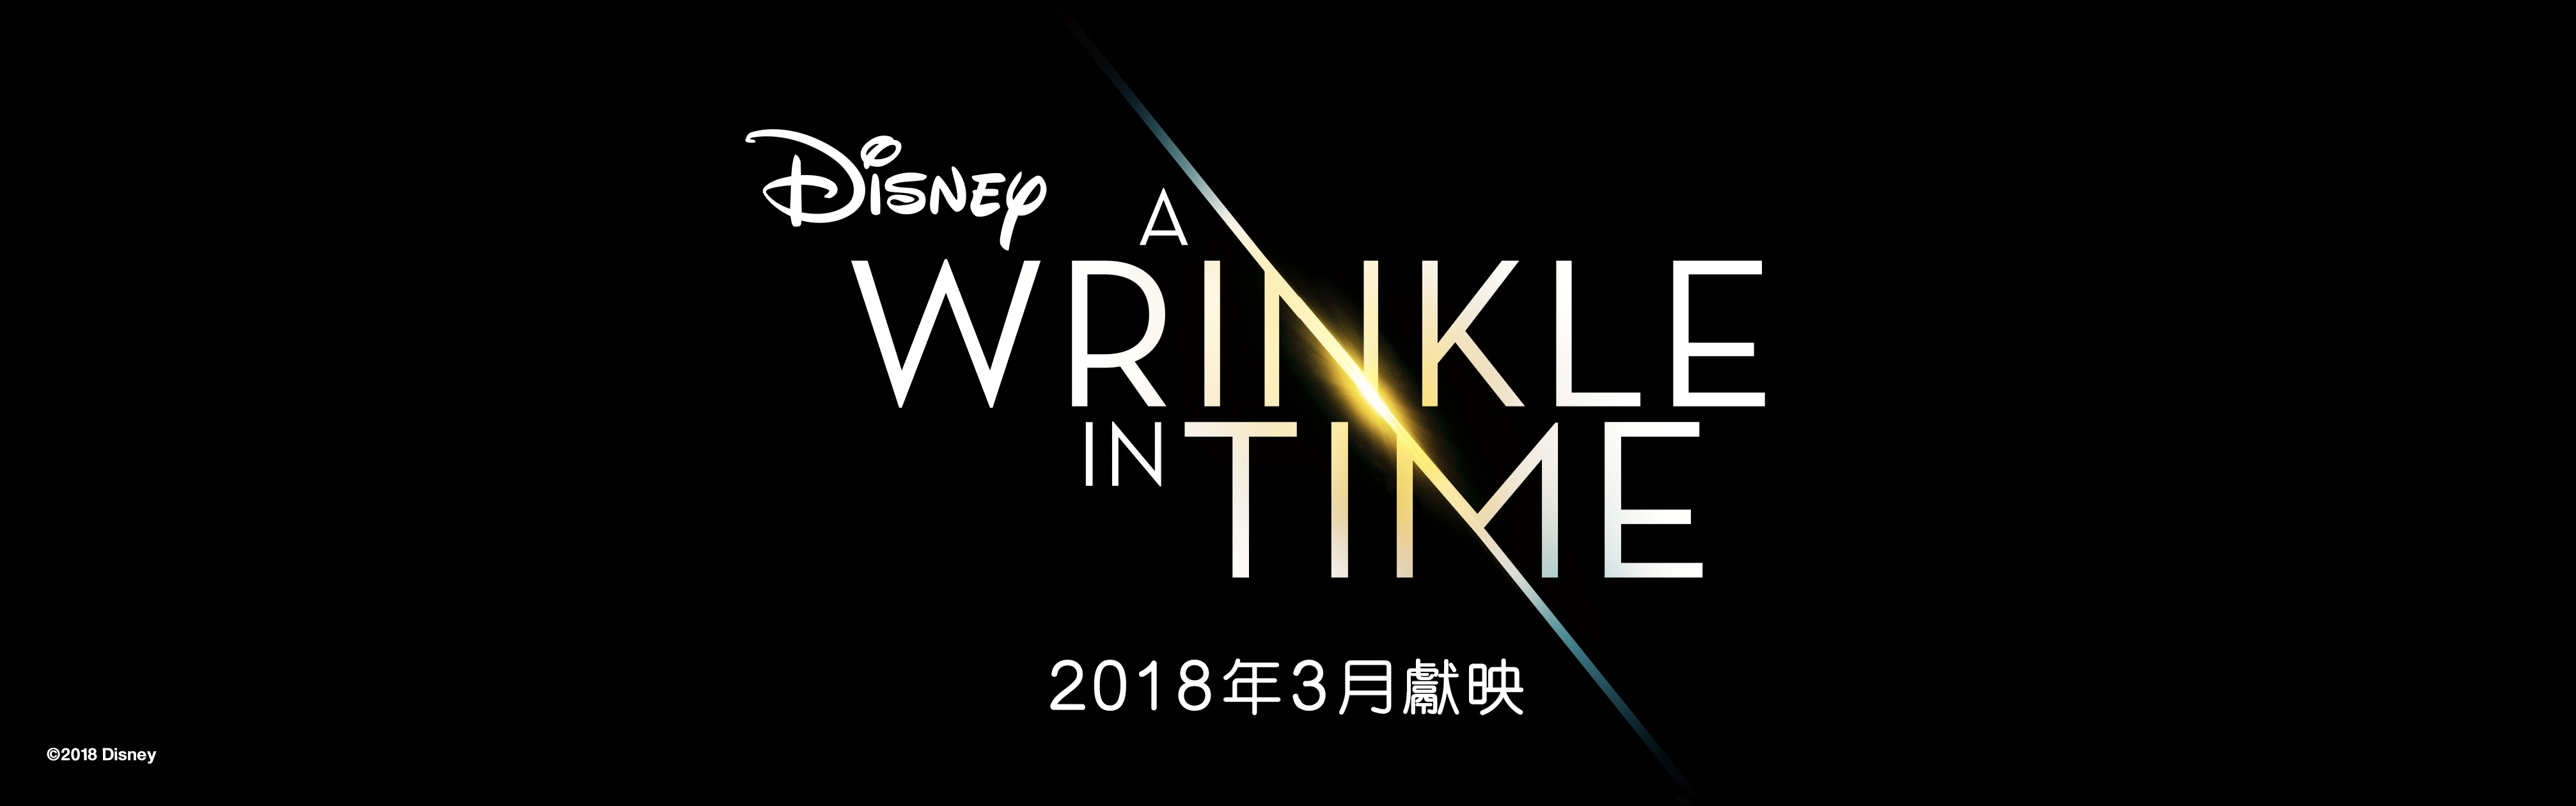 Wrinkle in time - Disney.com